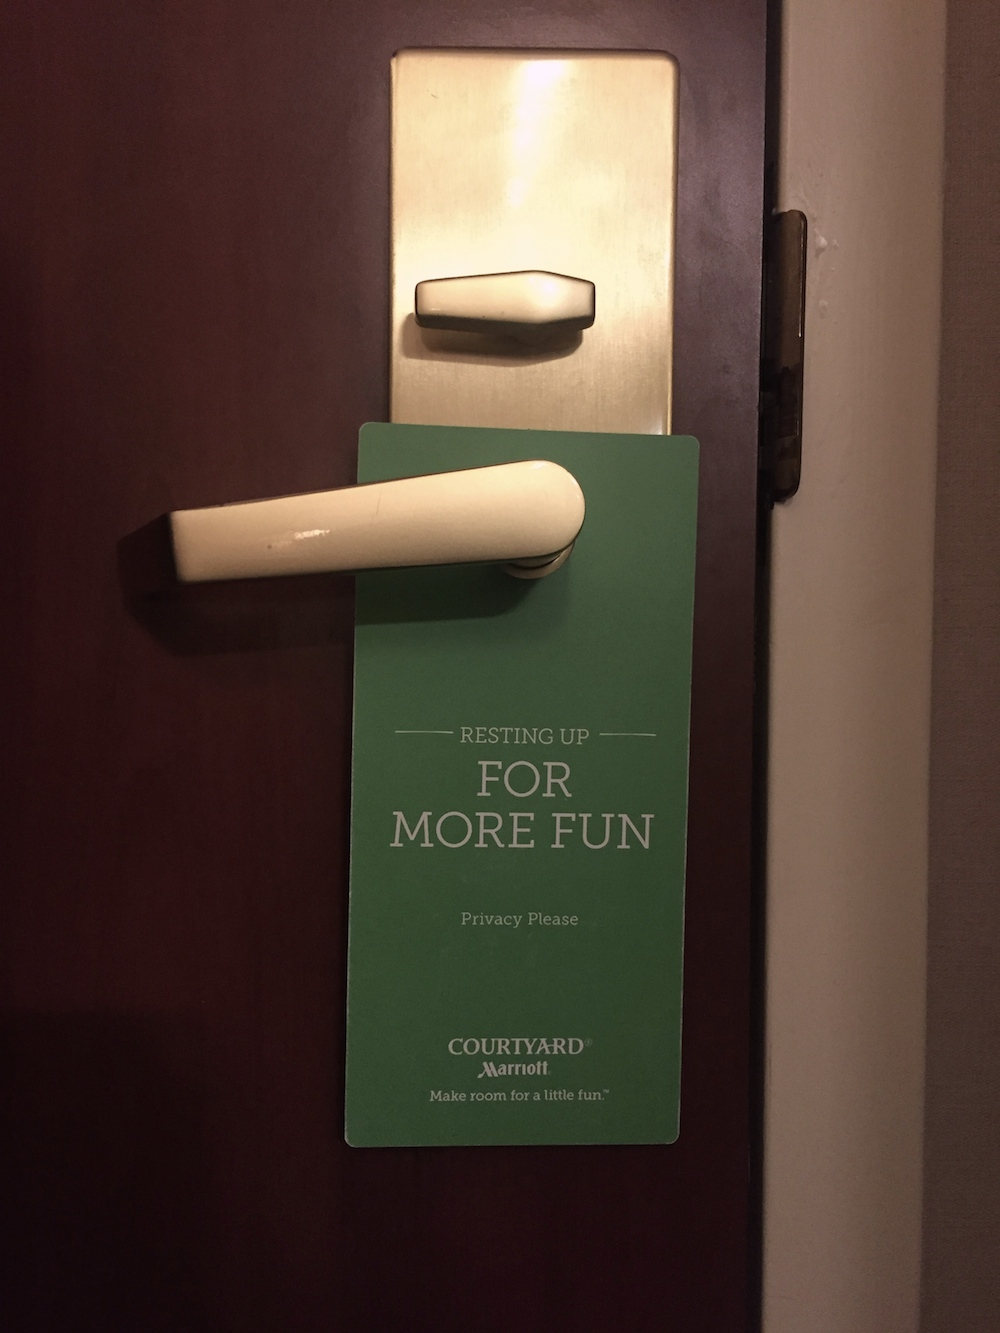 Do not disturb sign at Minneapolis St. Paul / Roseville Courtyard Marriott in Roseville, Minnesota